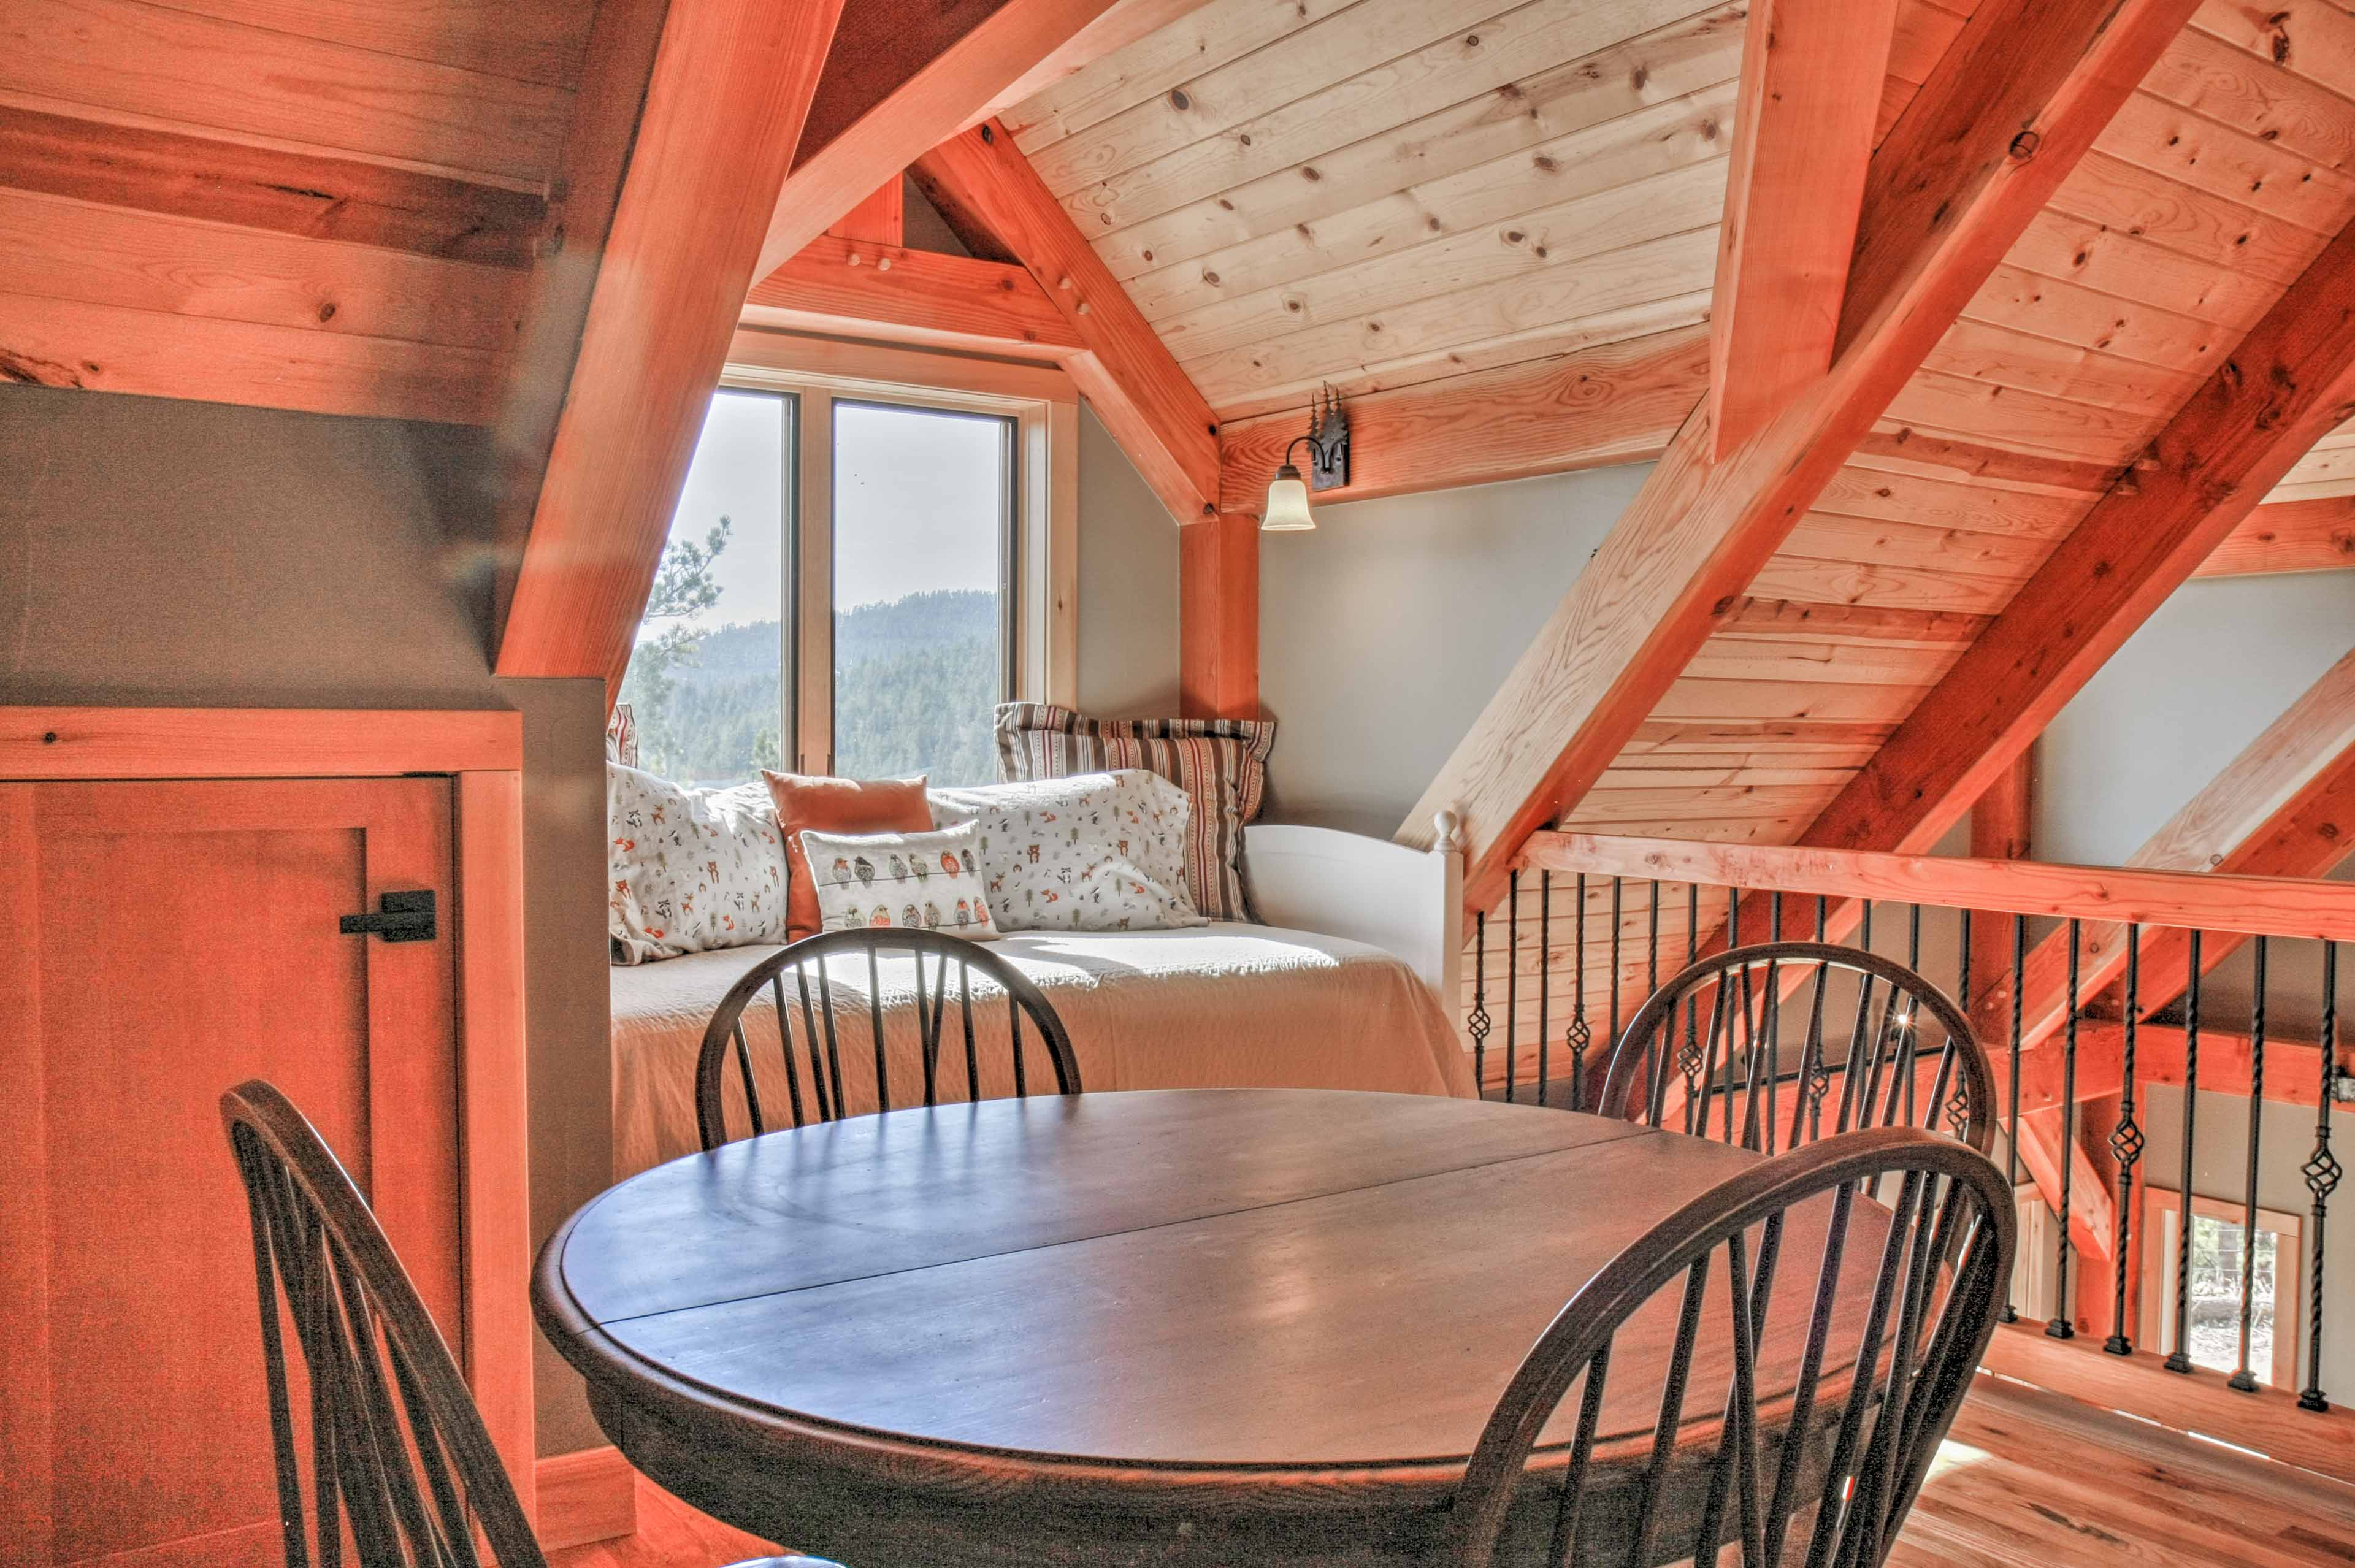 The loft offers additional sleeping space.